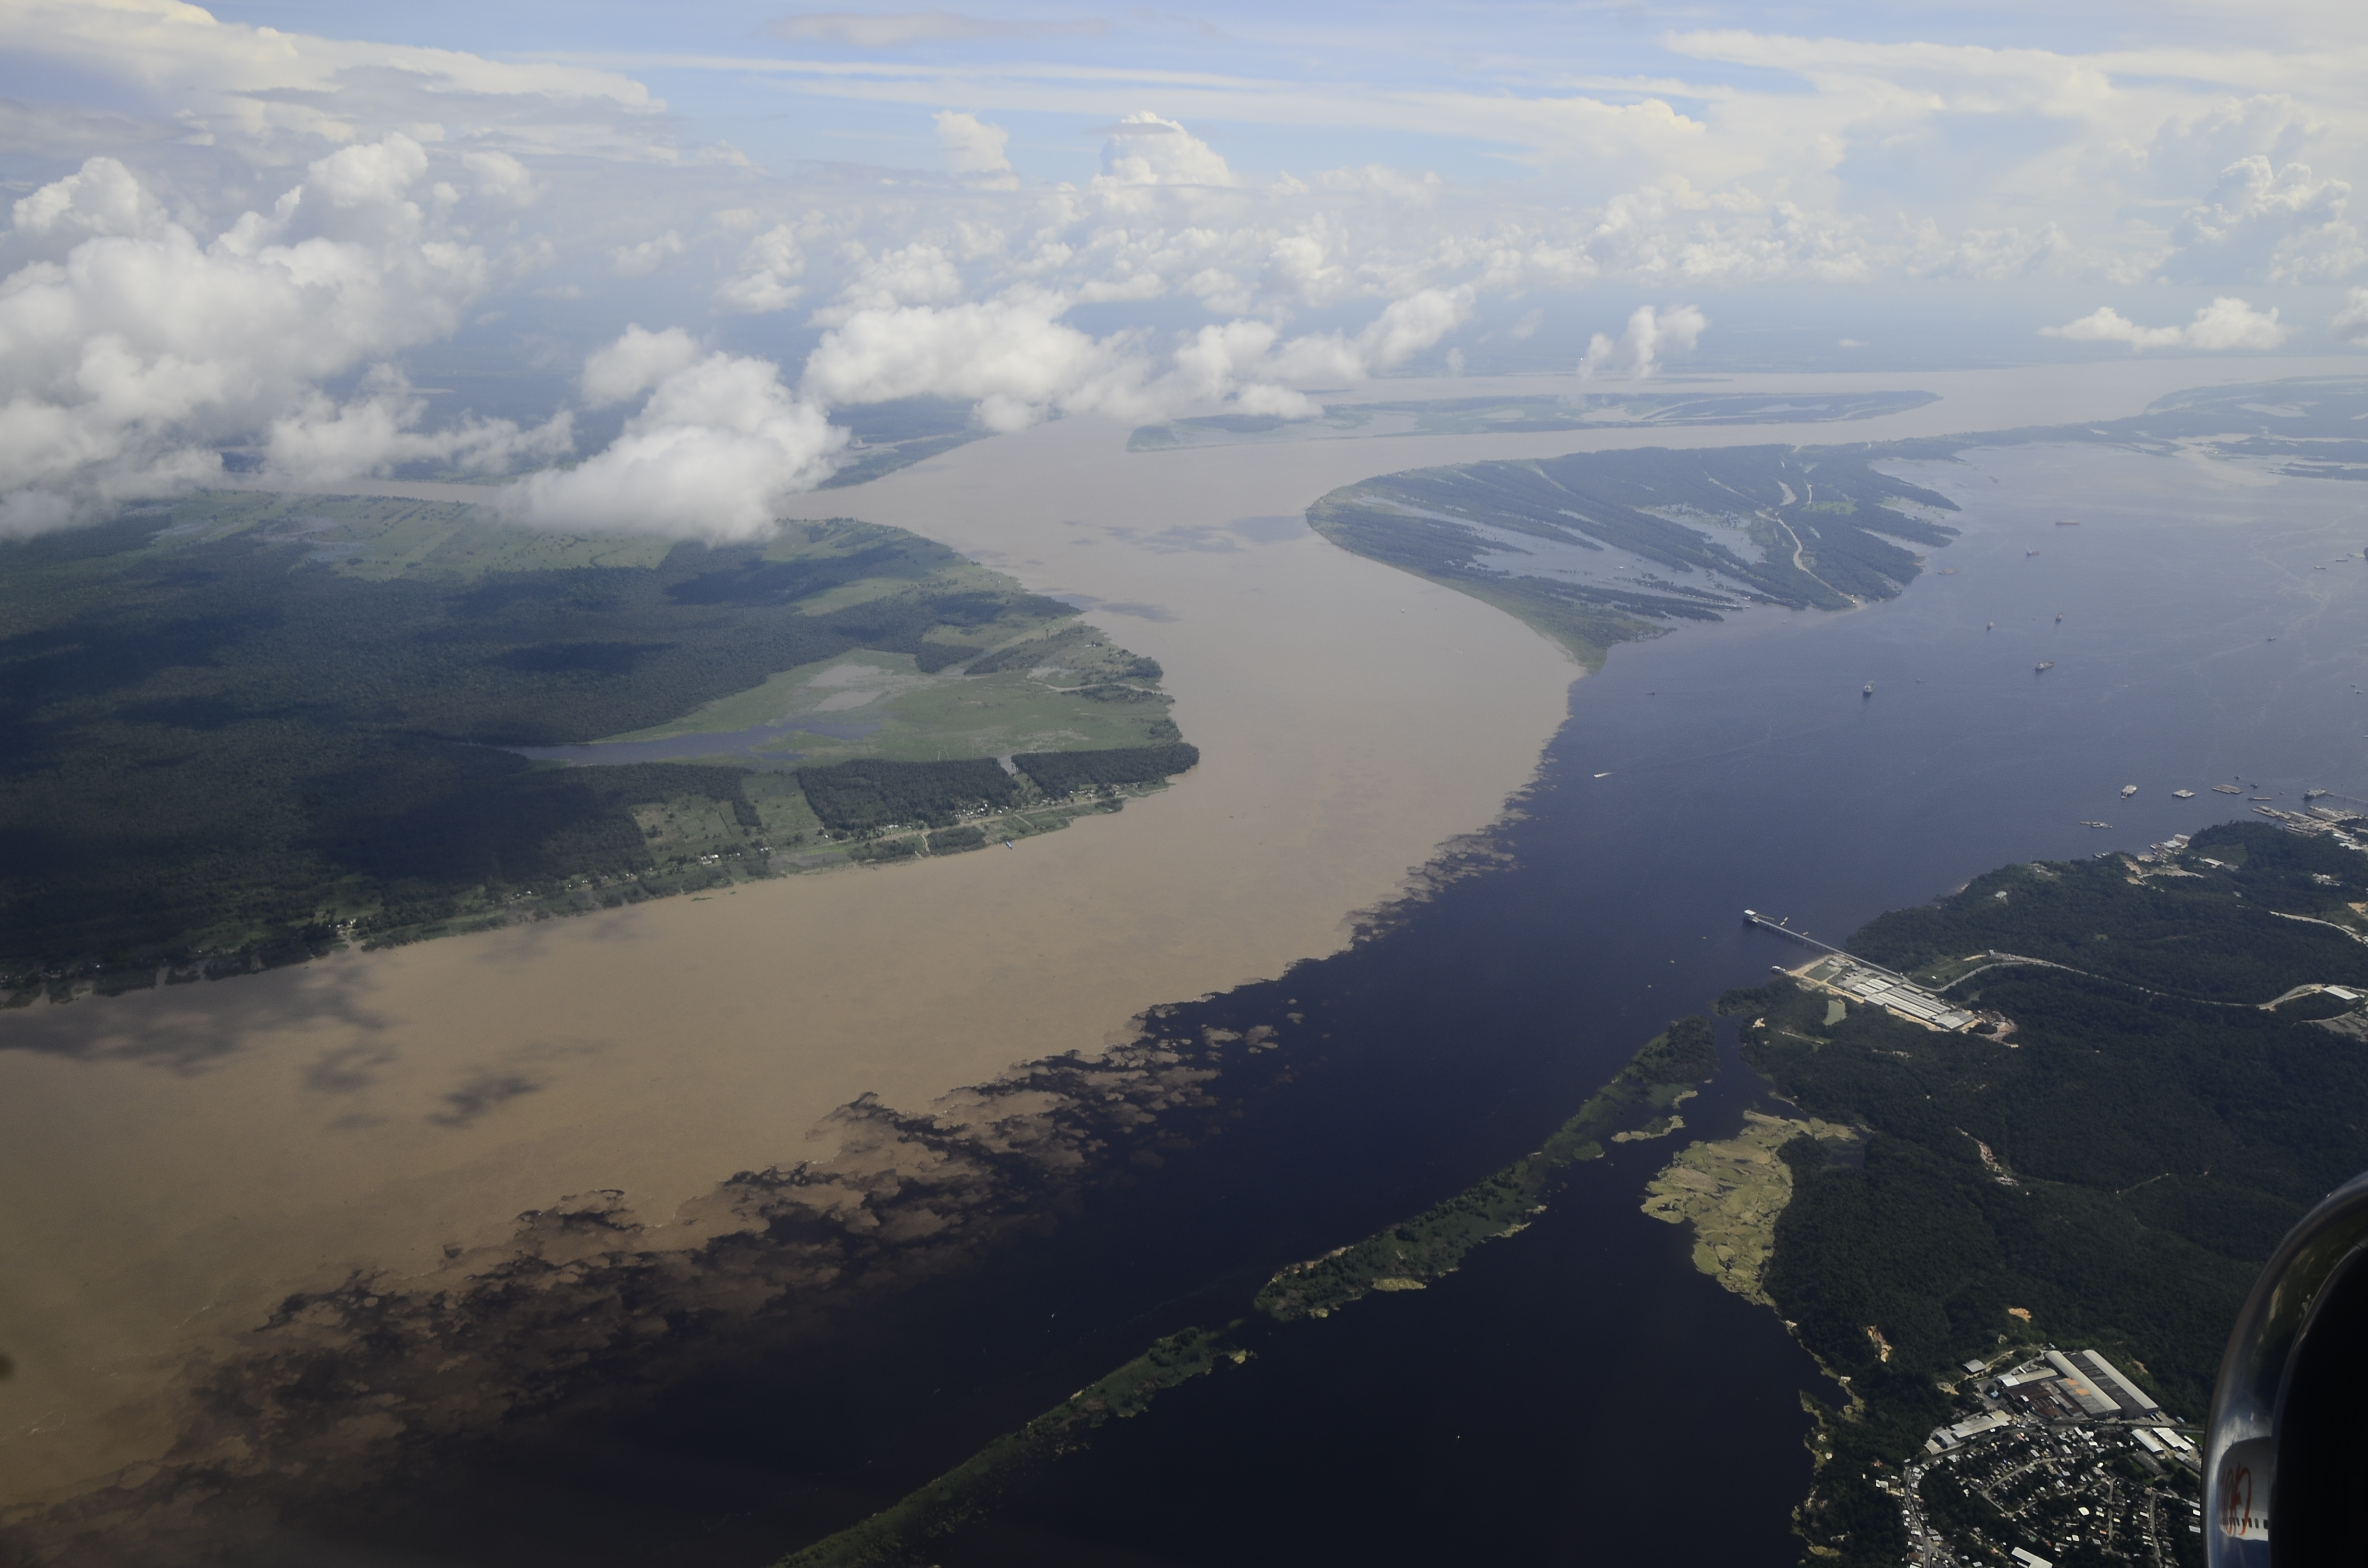 Meeting of the coffee-colored Rio Negro and cream-colored Rio Solimões.